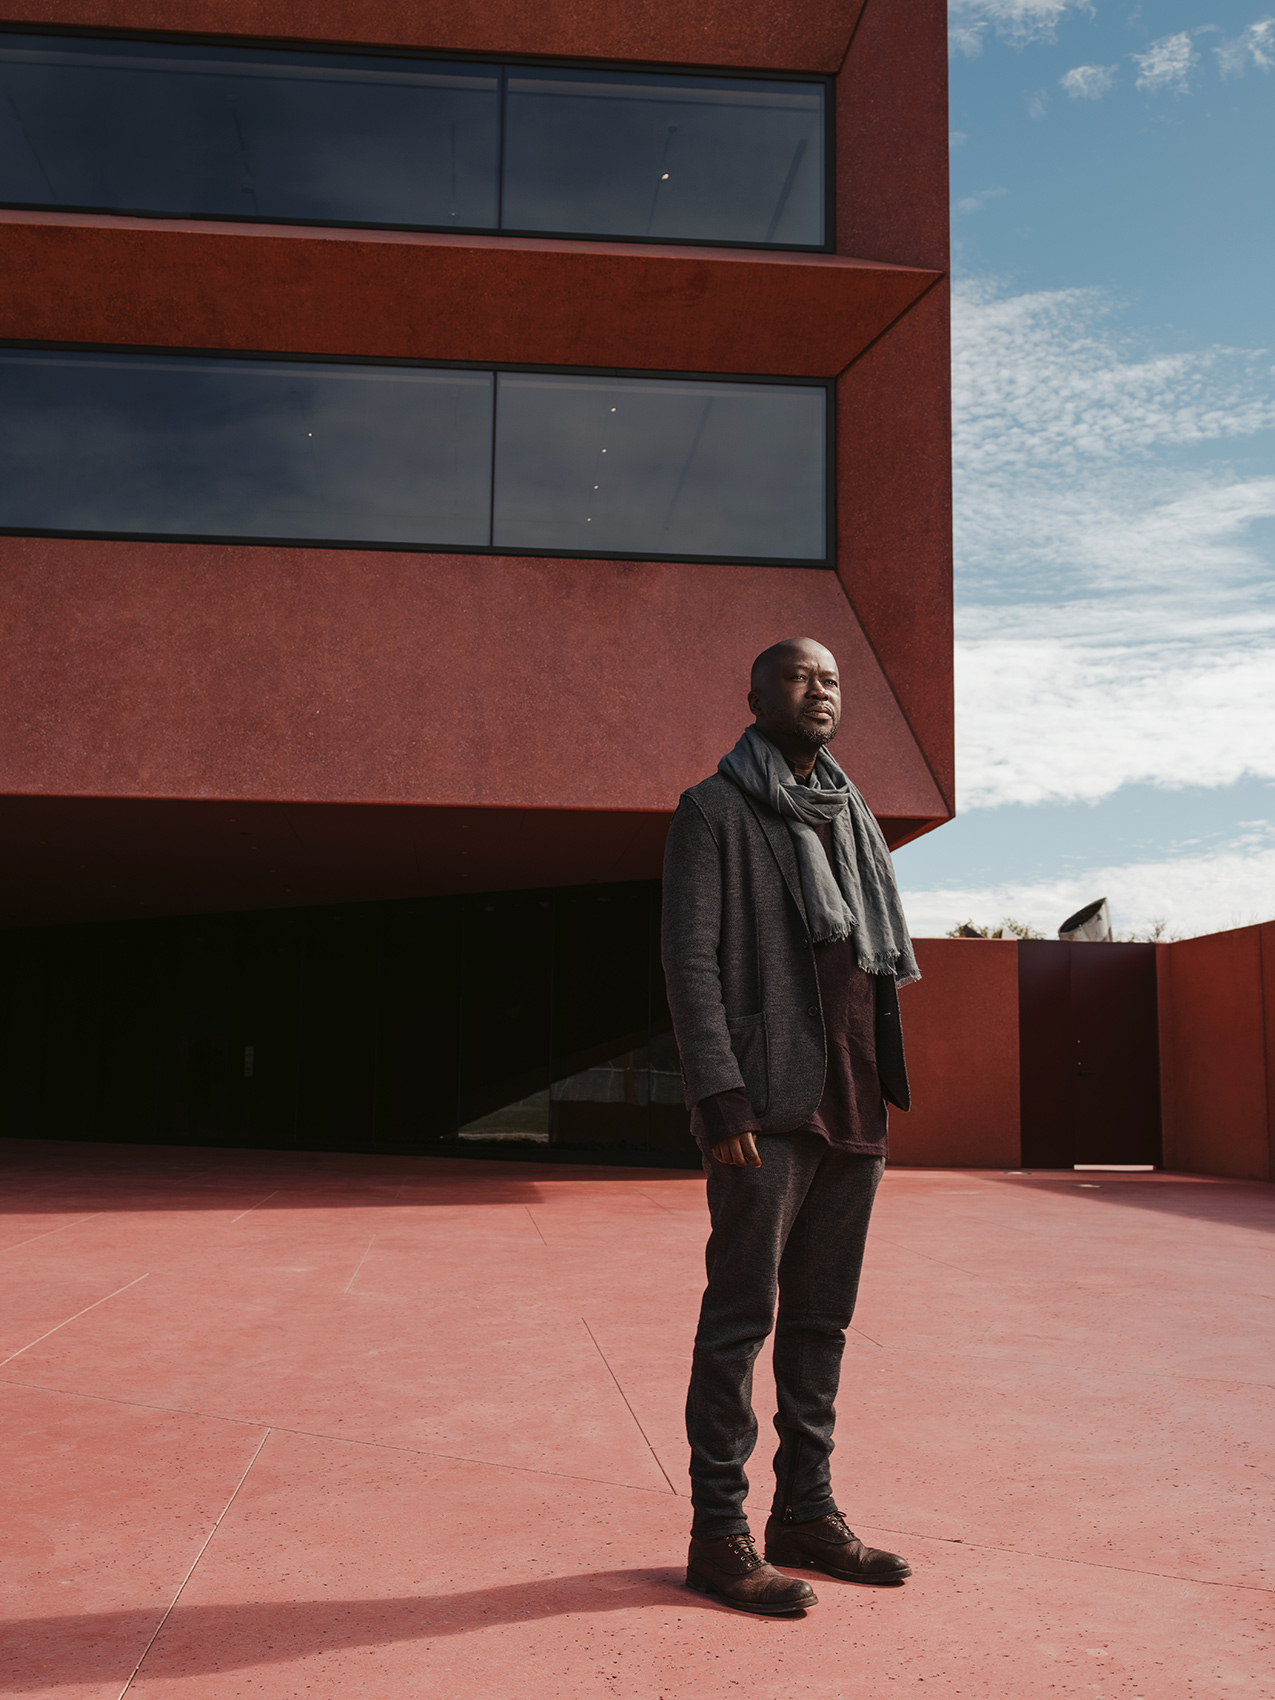 Sir David Adjaye photographed outside Ruby City in San Antonio, TX by portrait photographer Josh Huskin.